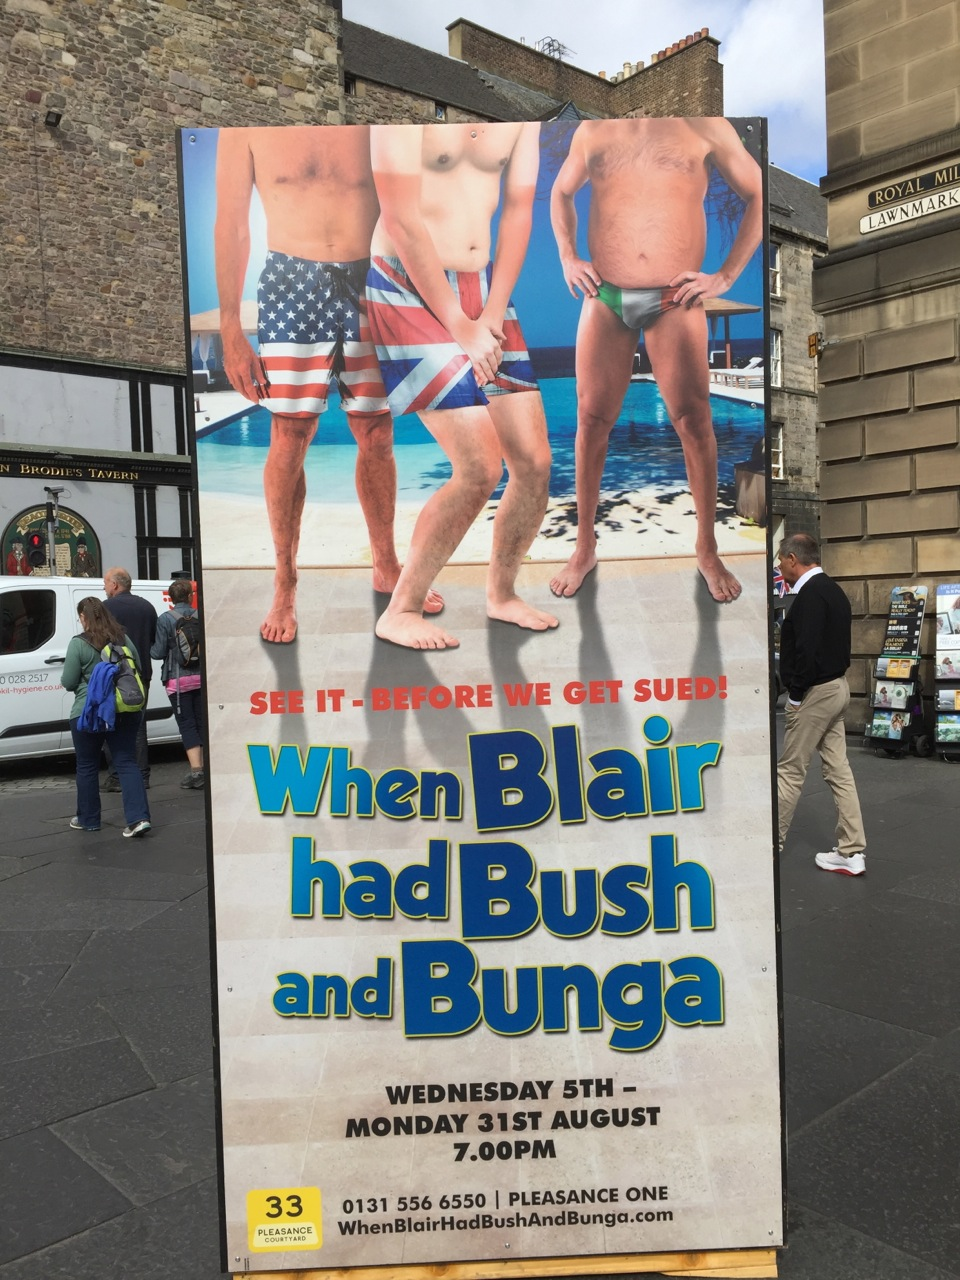 blair-bush-bunga.jpg